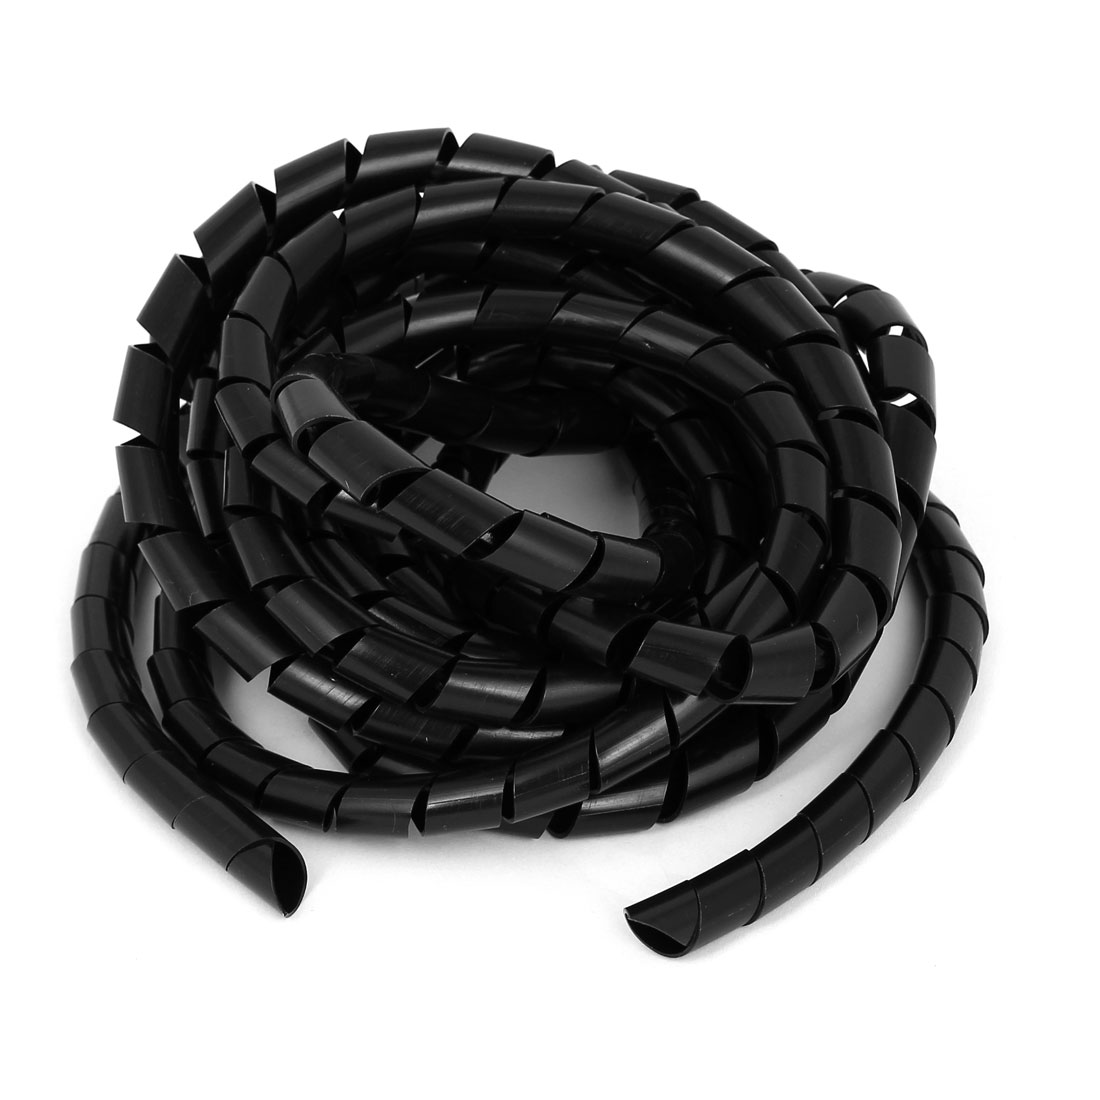 Unique Bargains 12mmx5.5m Spiral Cable Wire Wrap Tube Computer Cinema TV Management Cord Black